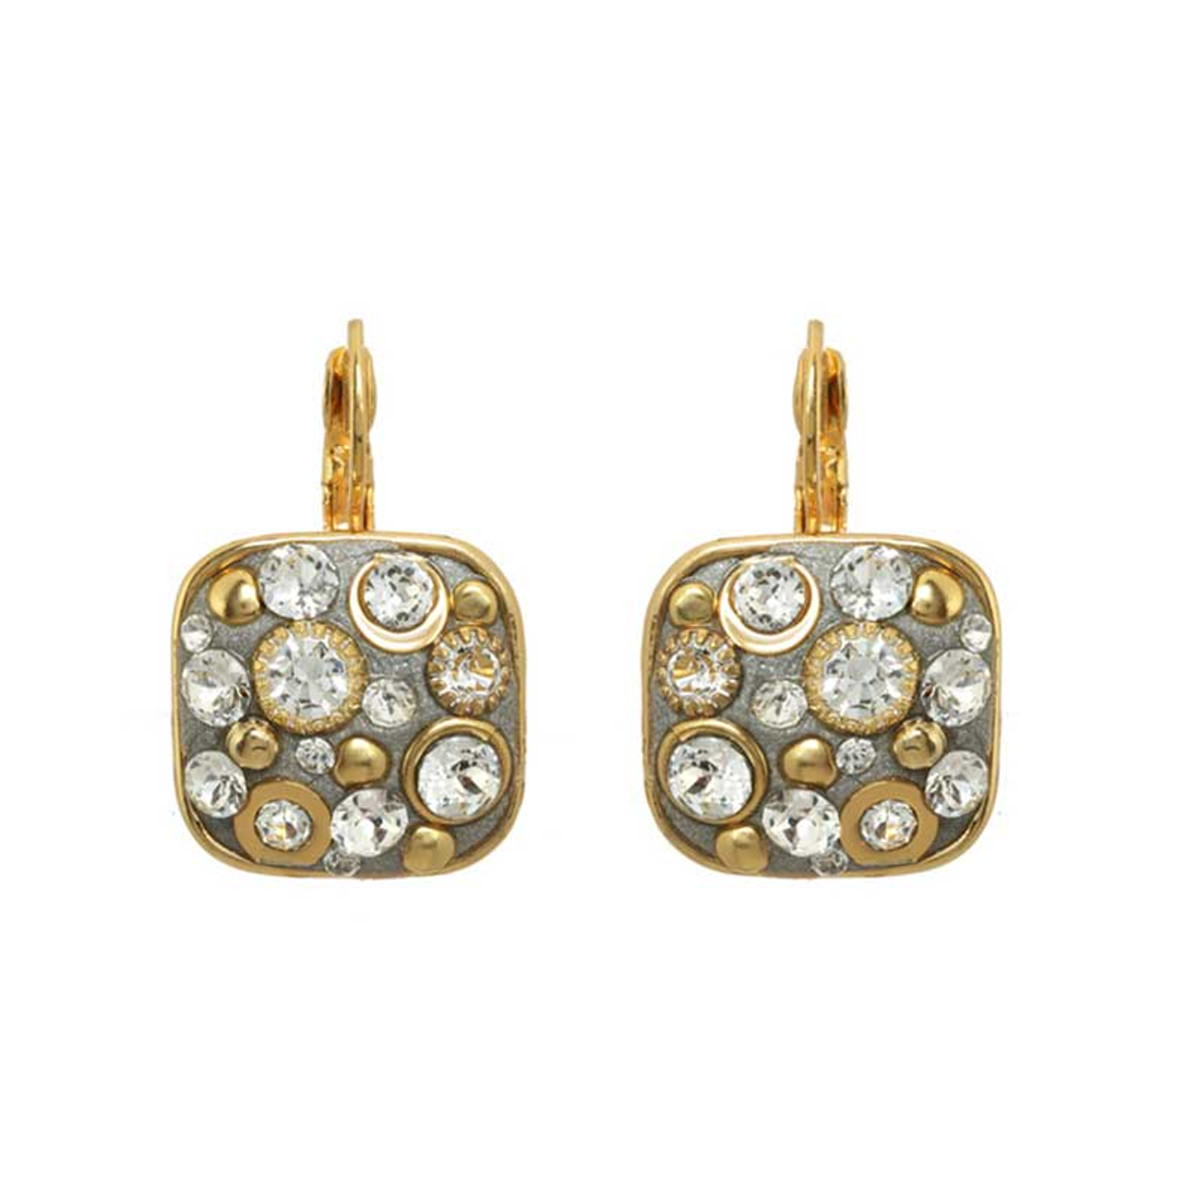 Gold Michal Golan Icicle Earrings